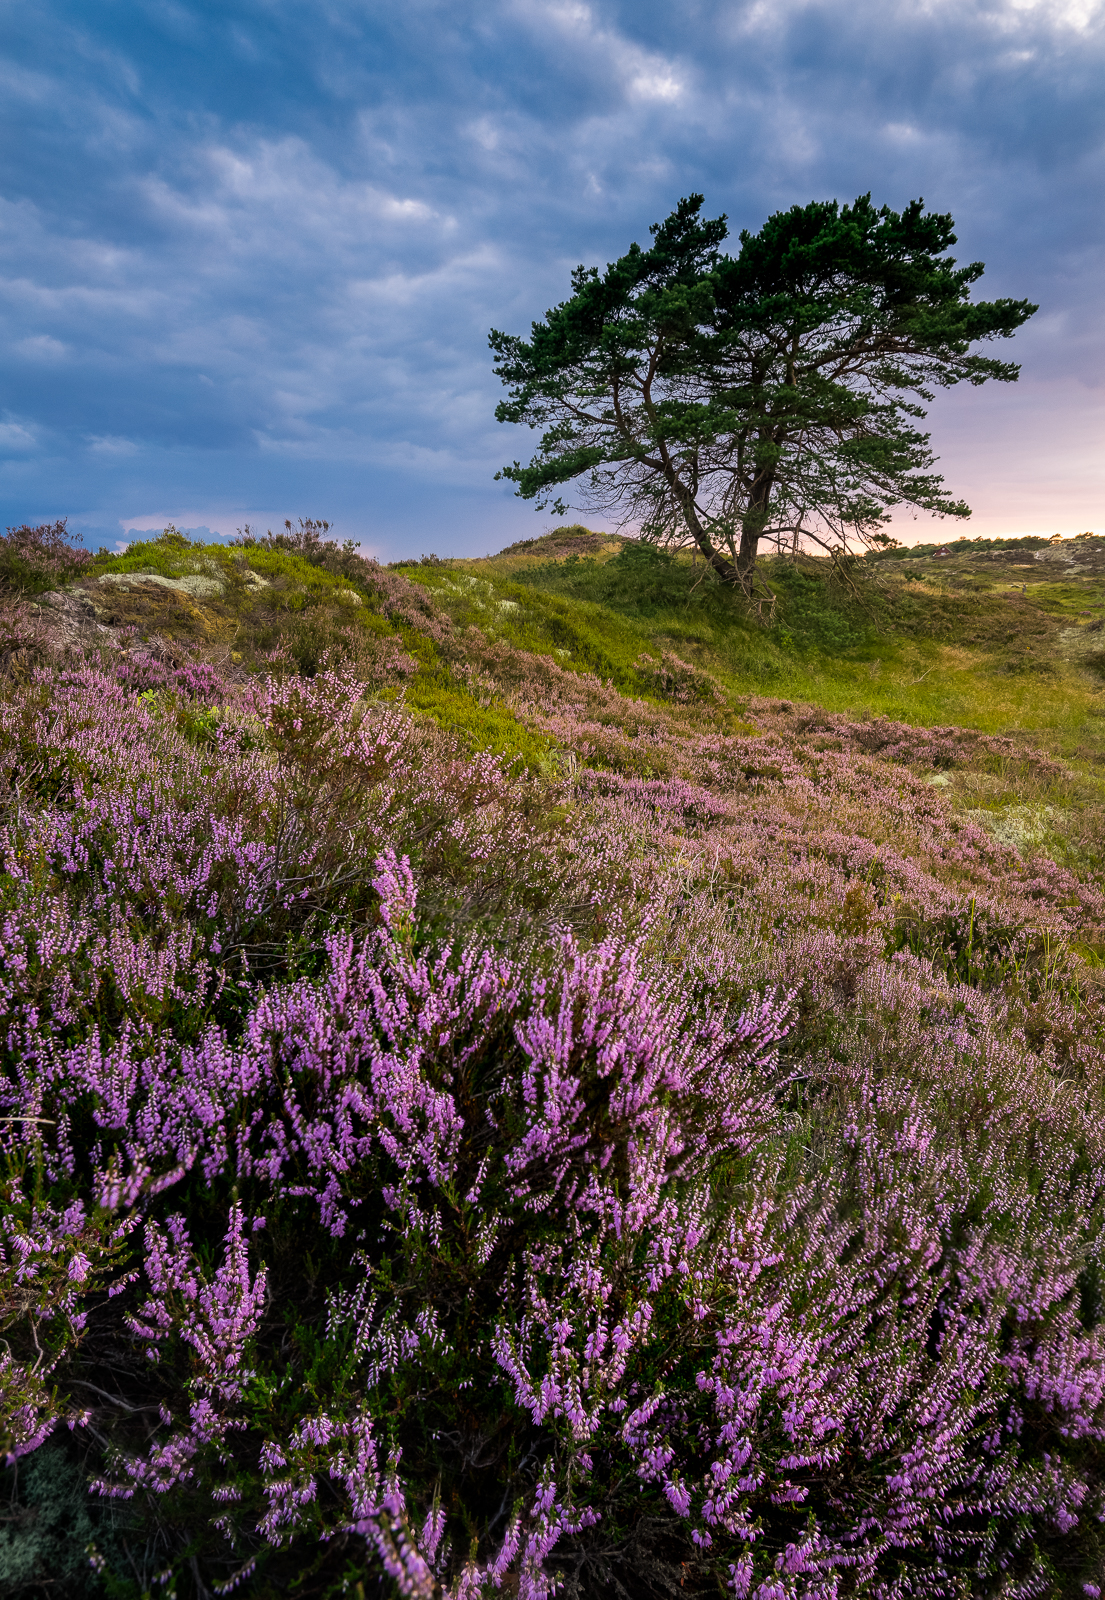 Getting the heather close to the foreground and having an interesting object in the background. A nicely balanced composition.